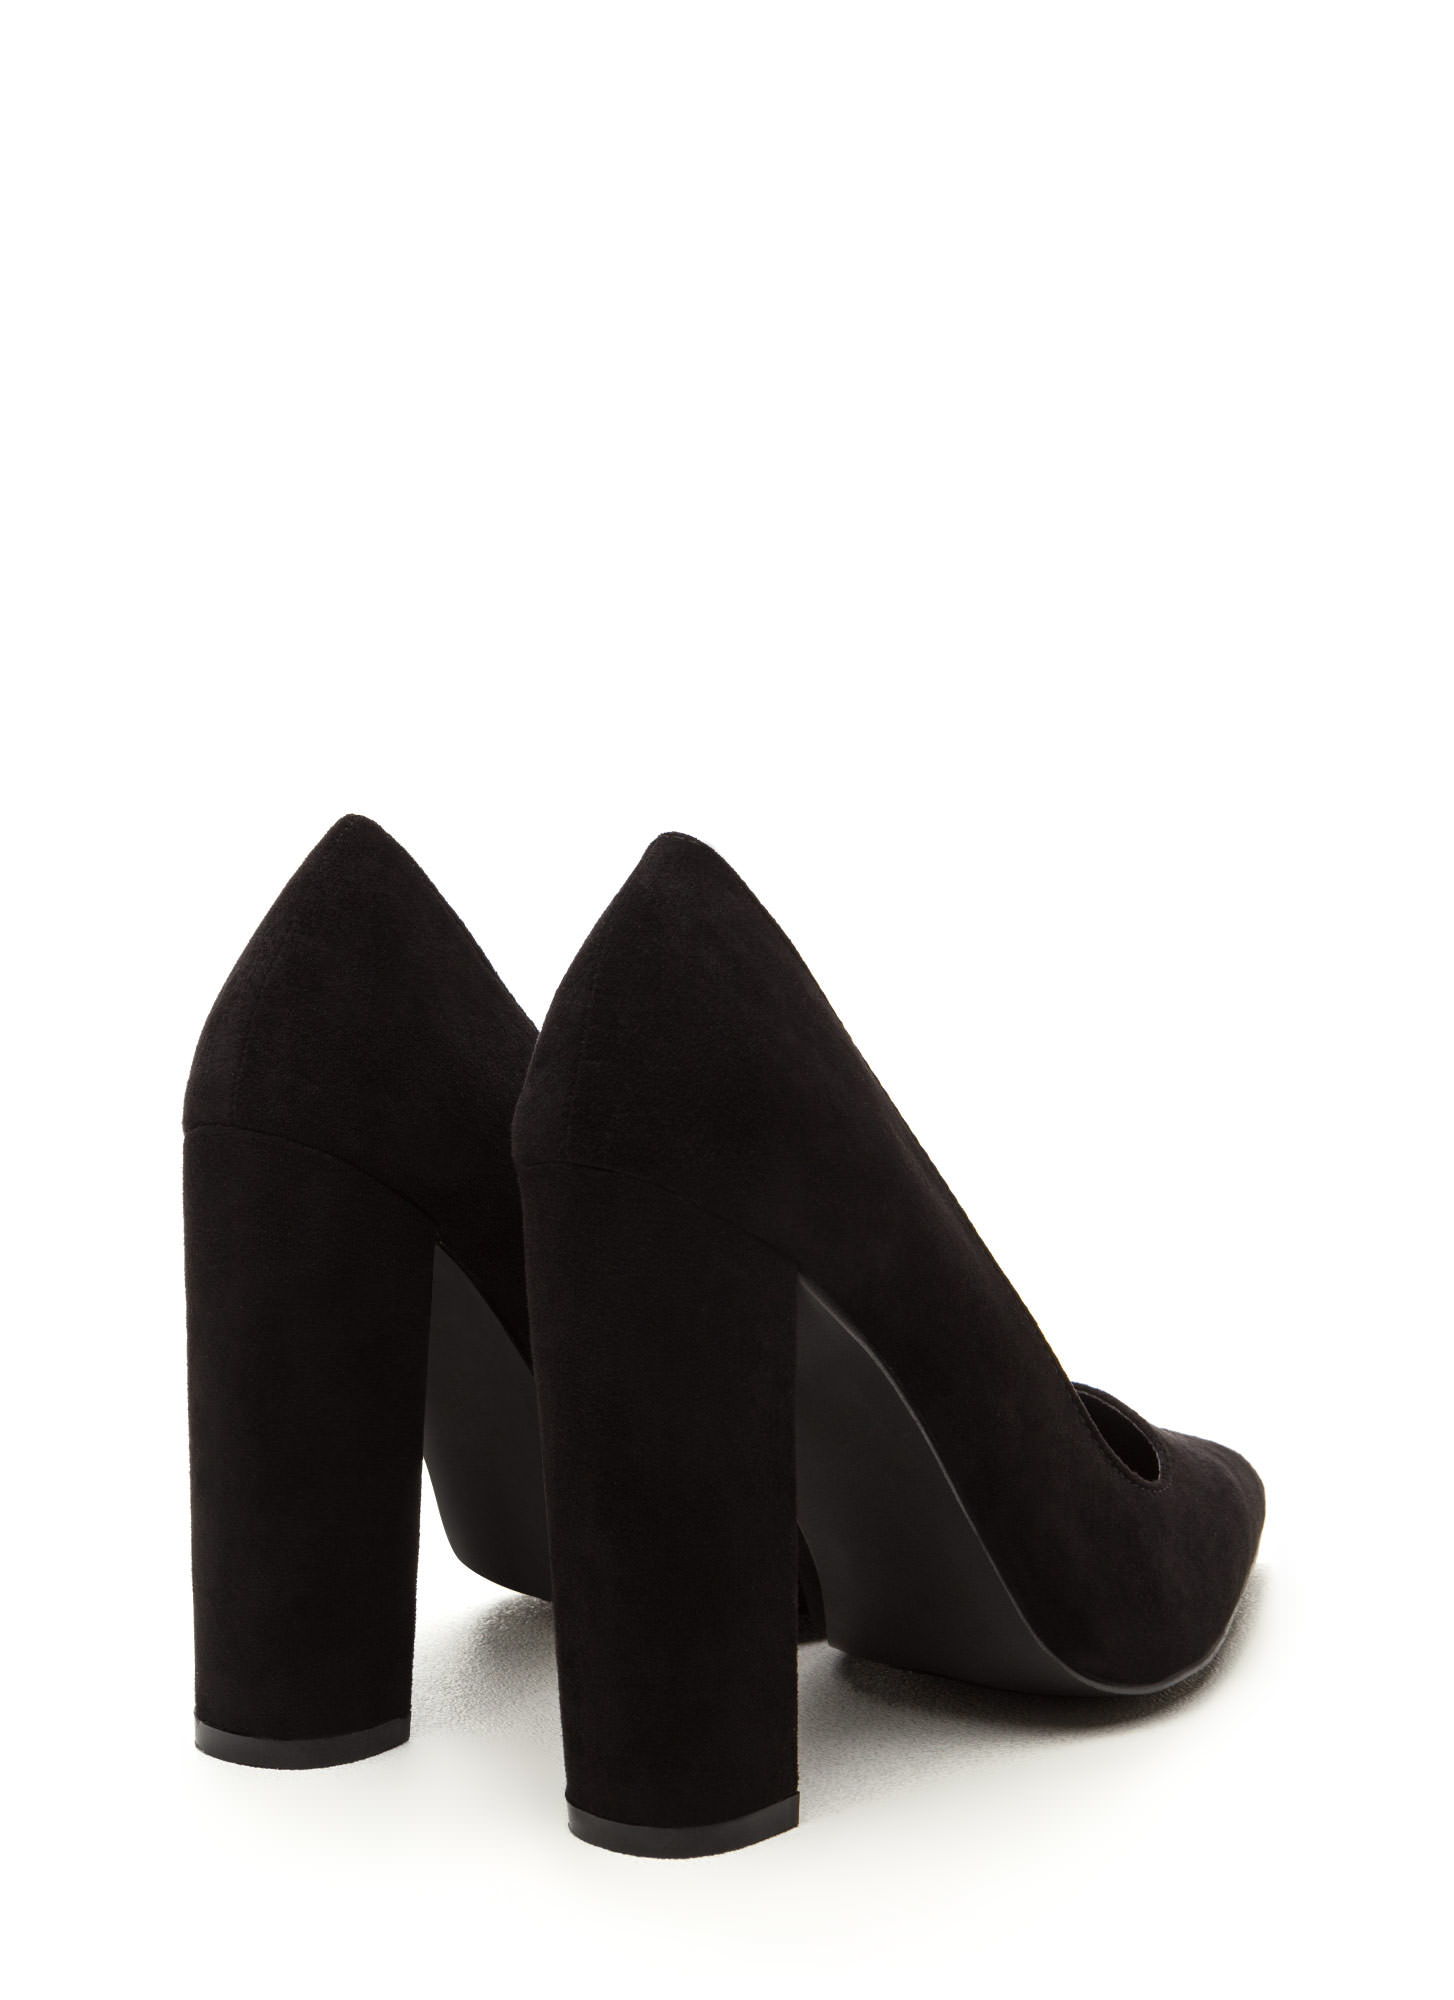 Business Chic Pointy Chunky Heel Pumps BLACK